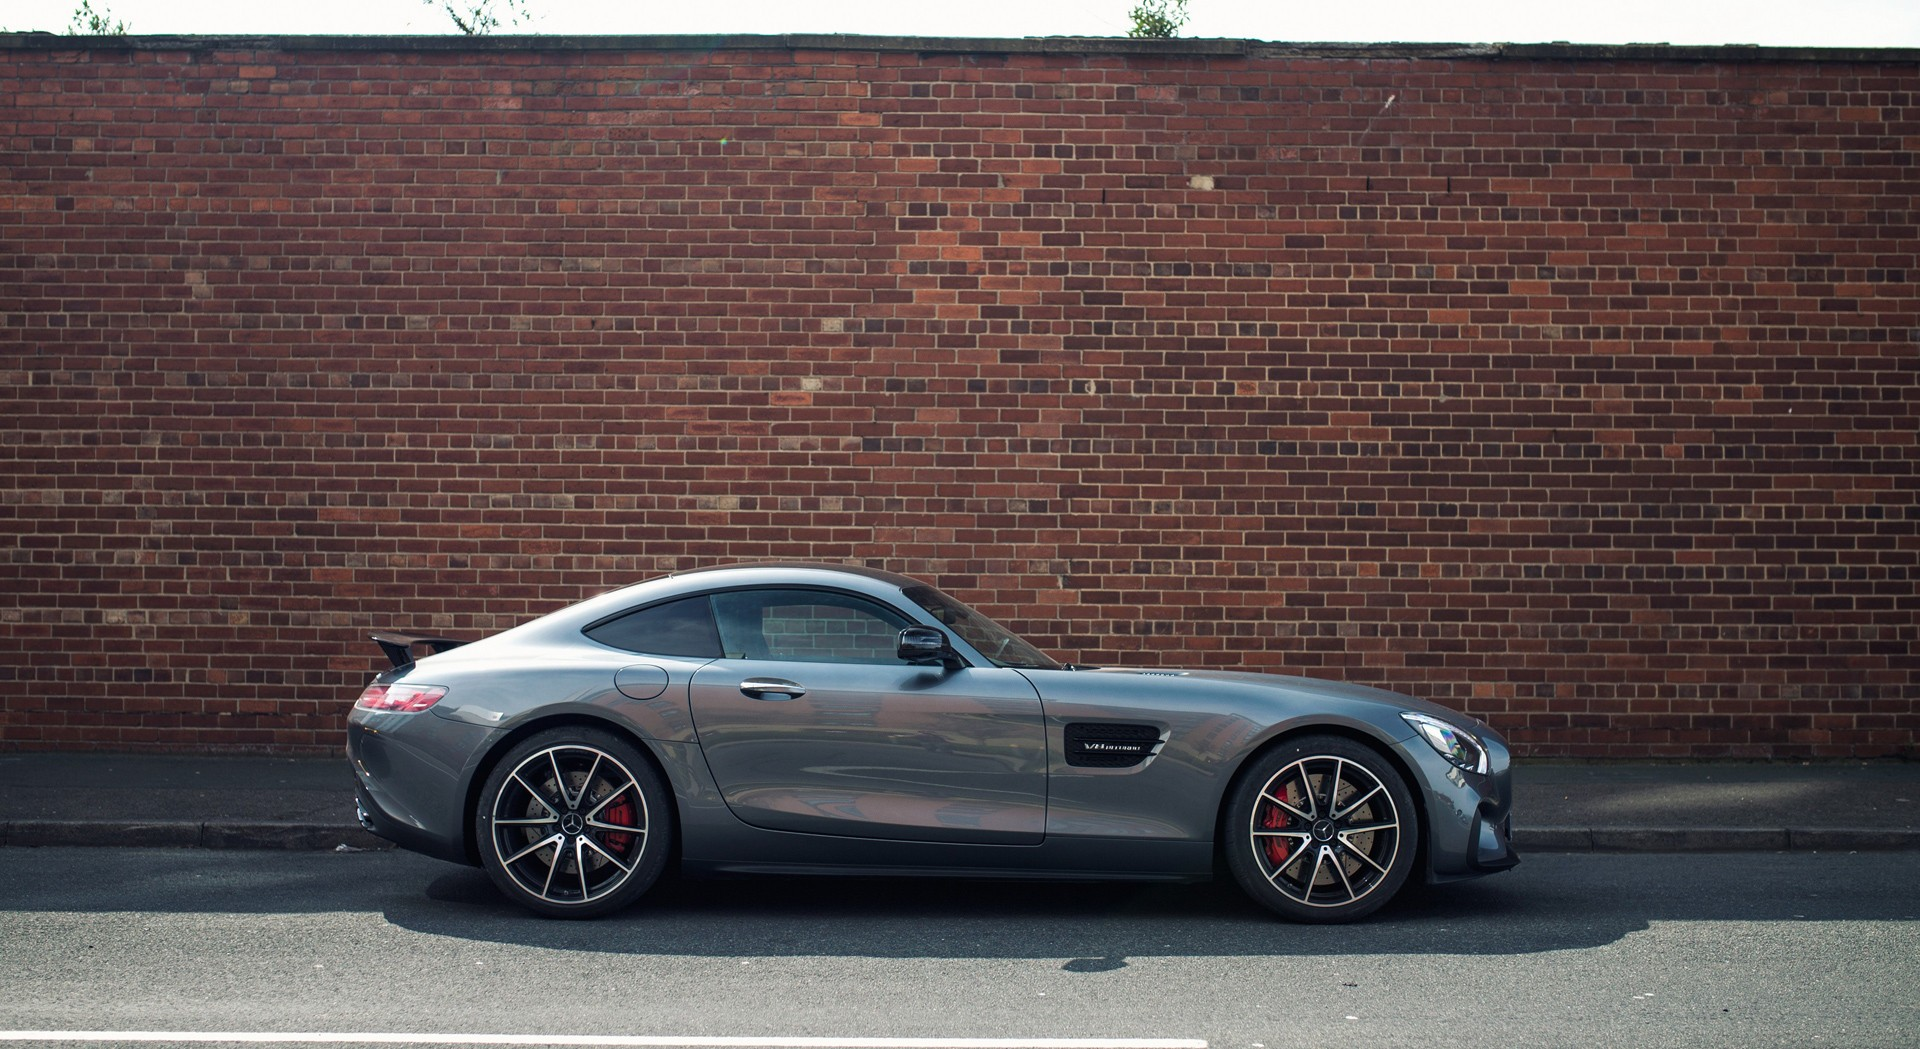 mercedes amg gt coupe hd desktop wallpapers 4k hd. Black Bedroom Furniture Sets. Home Design Ideas